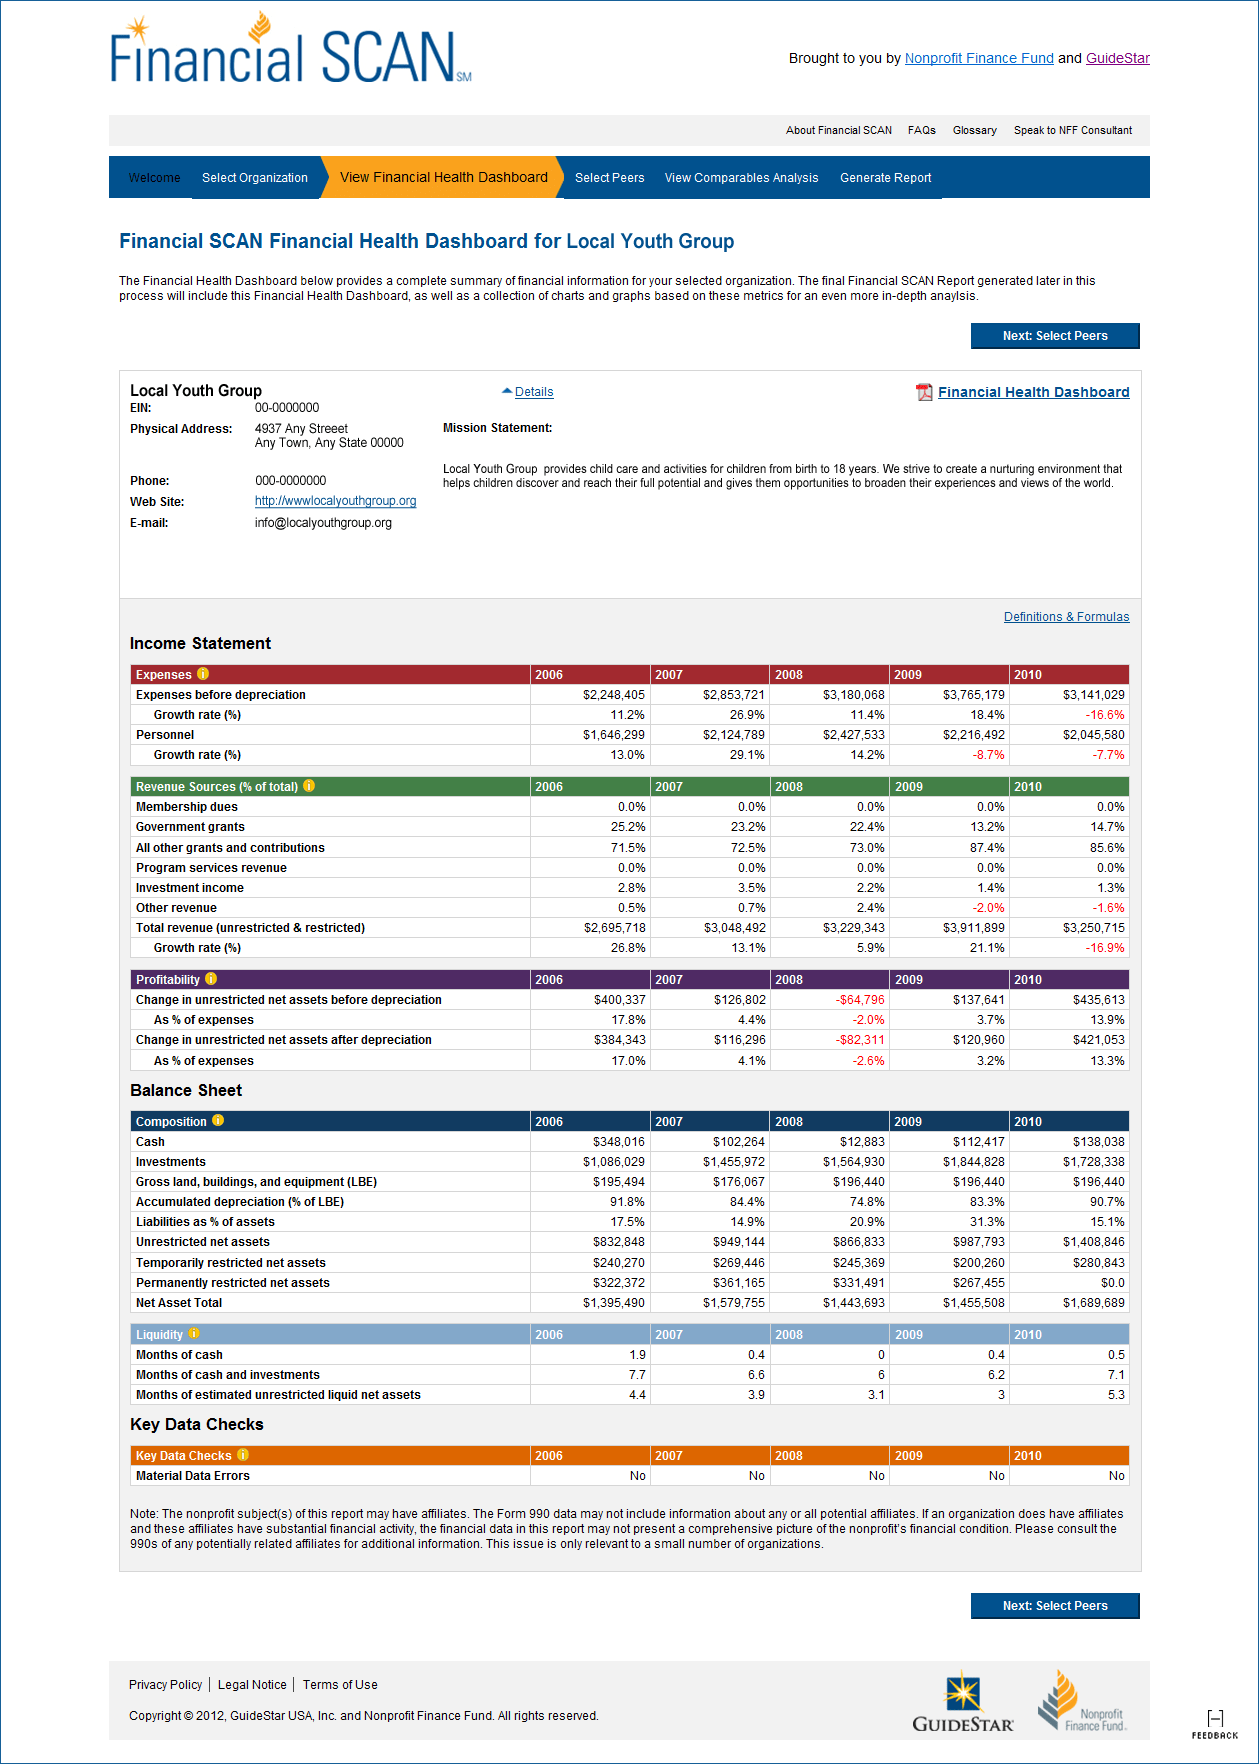 Financial Dashboard Template for Excel and Financial Scan